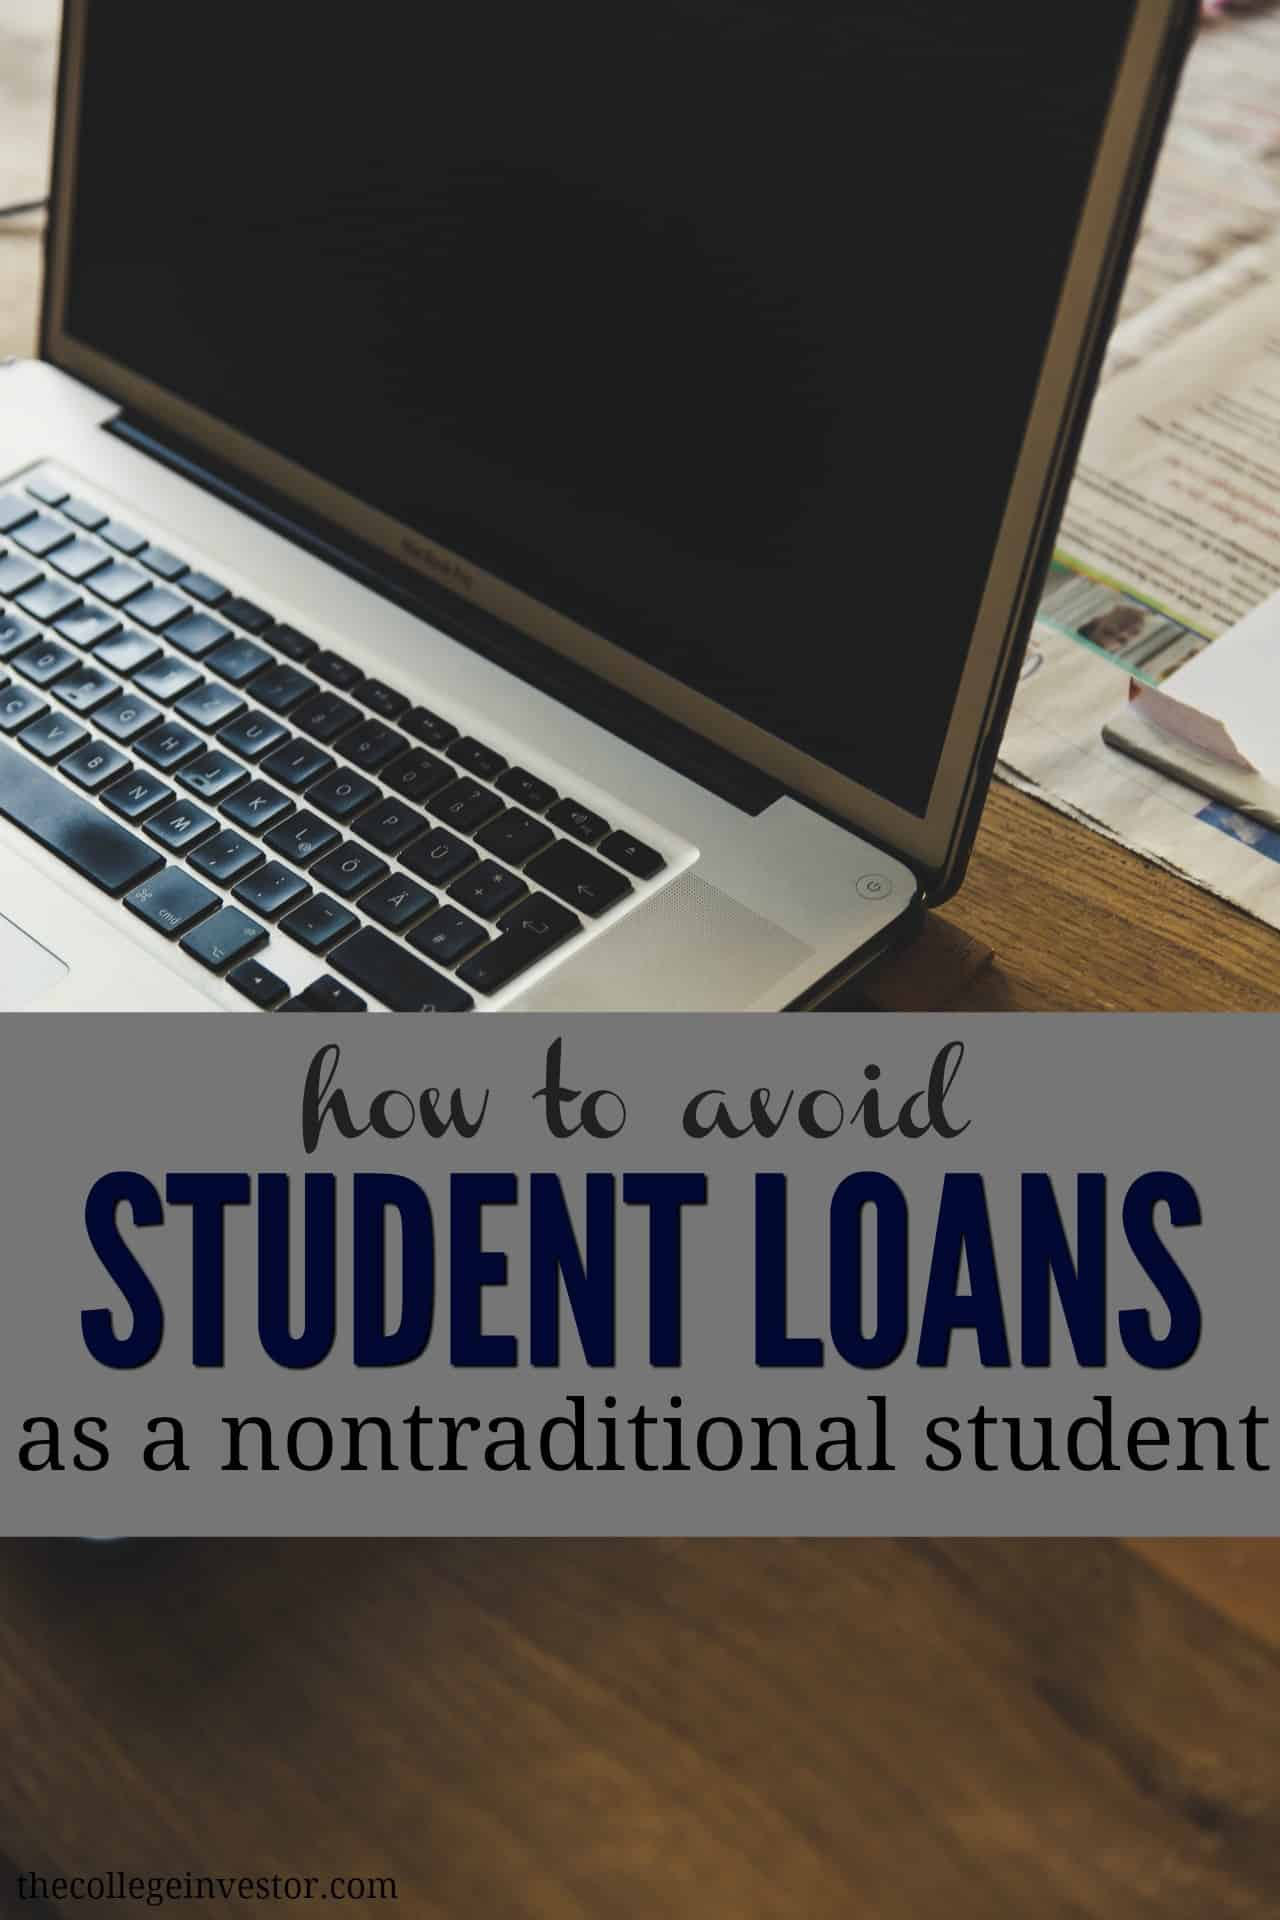 How To Use Frugality And Pell Grants To Dodge Student Loans As A Nontraditional Student